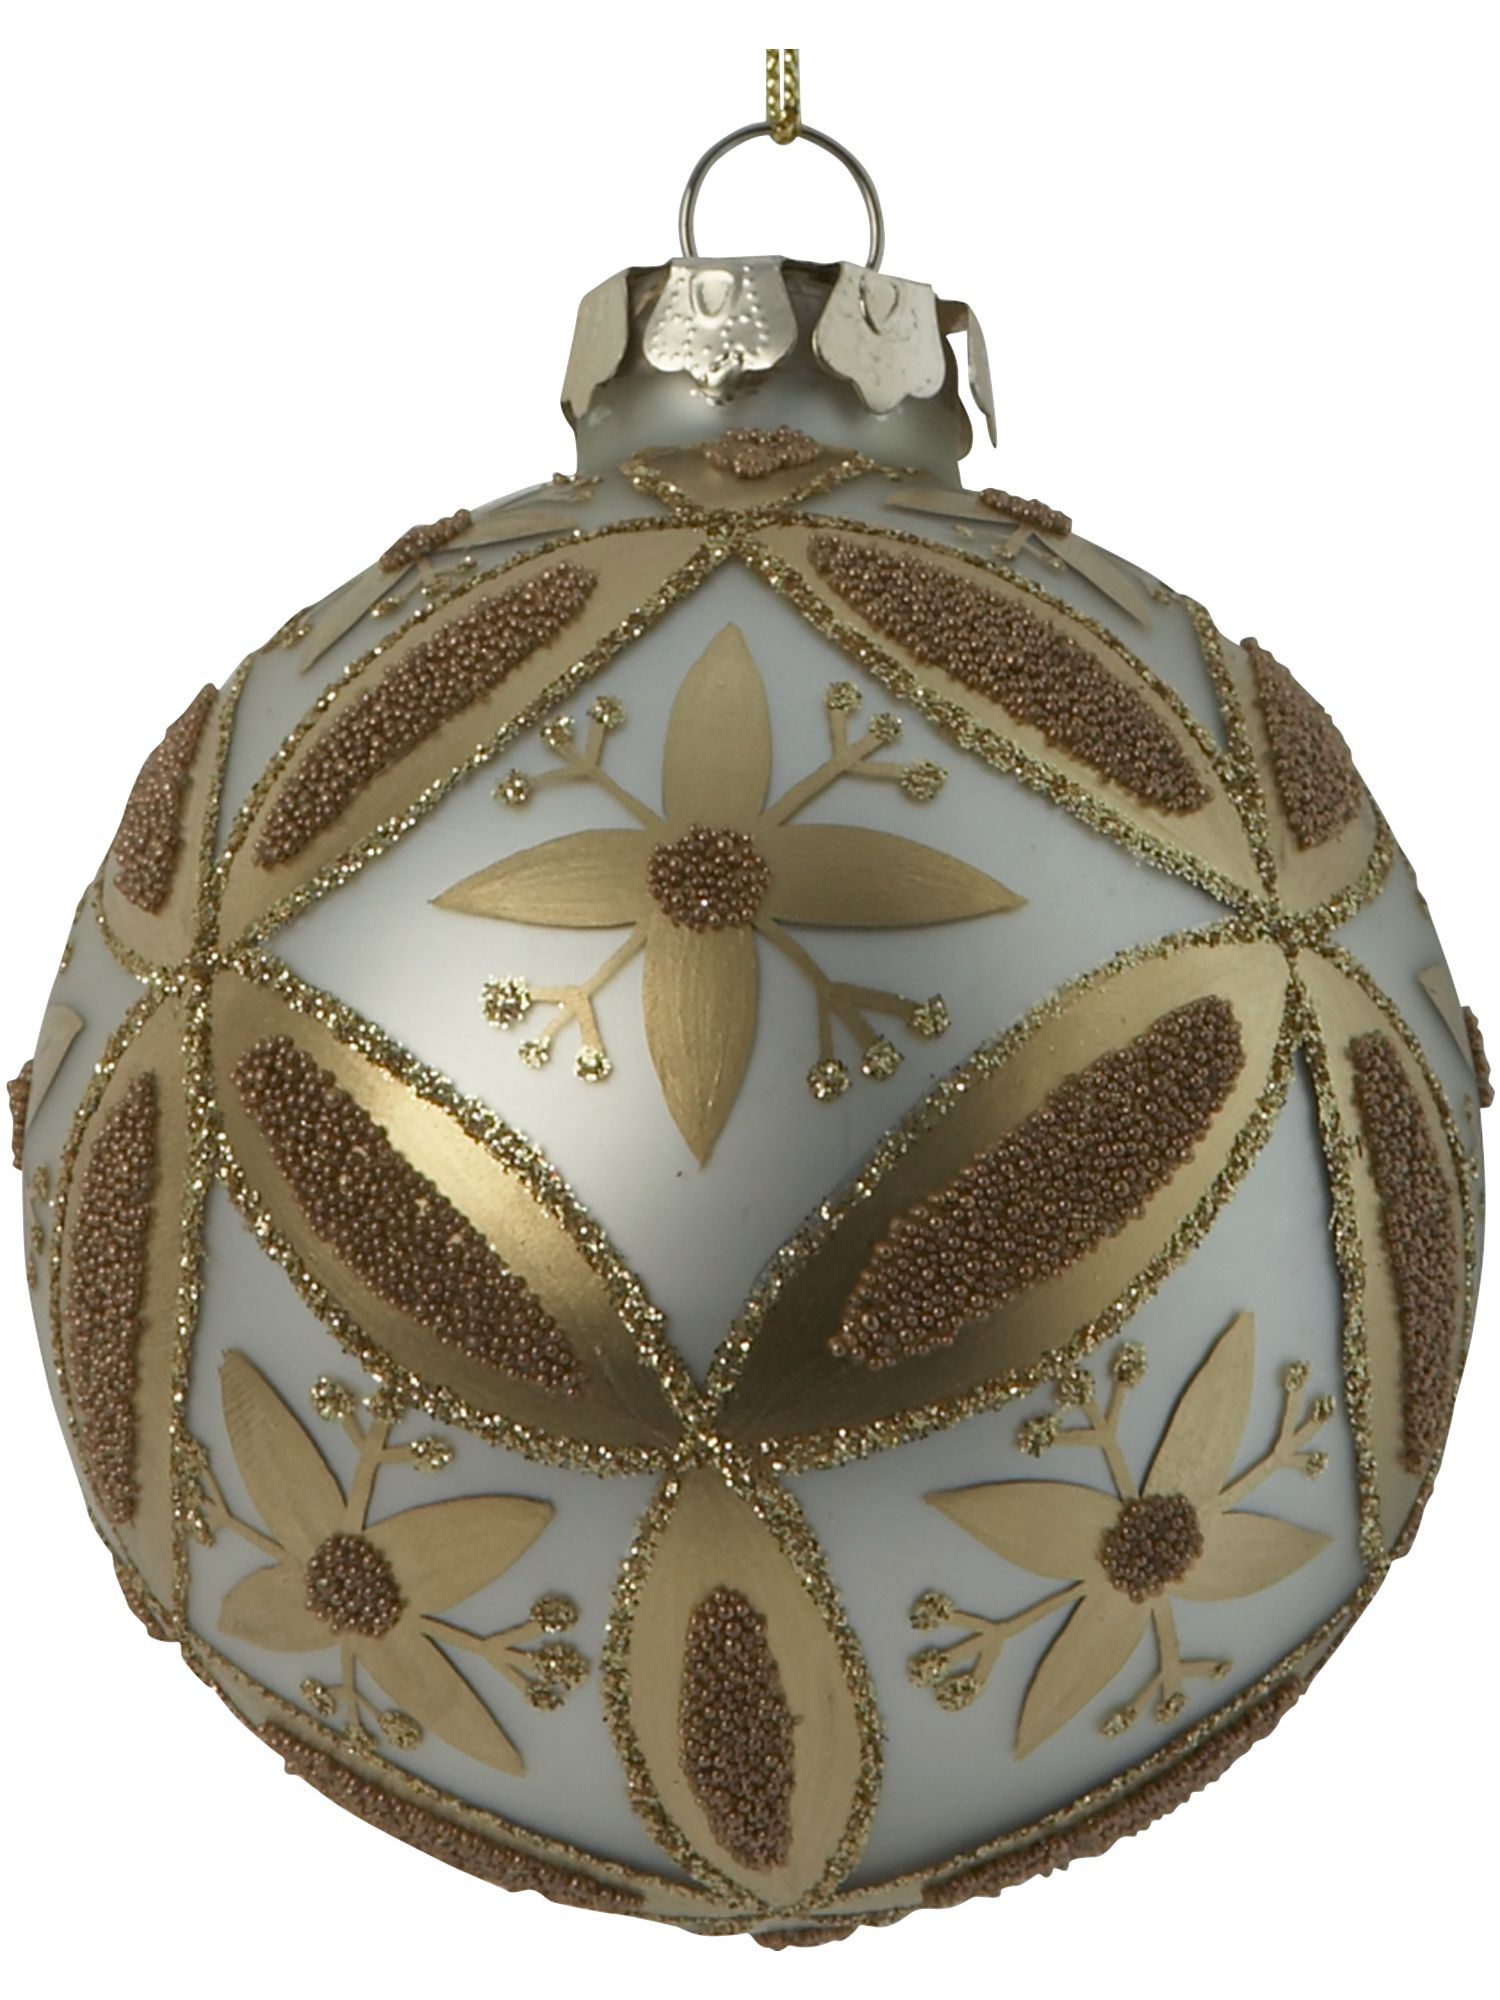 Renaissance gold tiled cream bauble